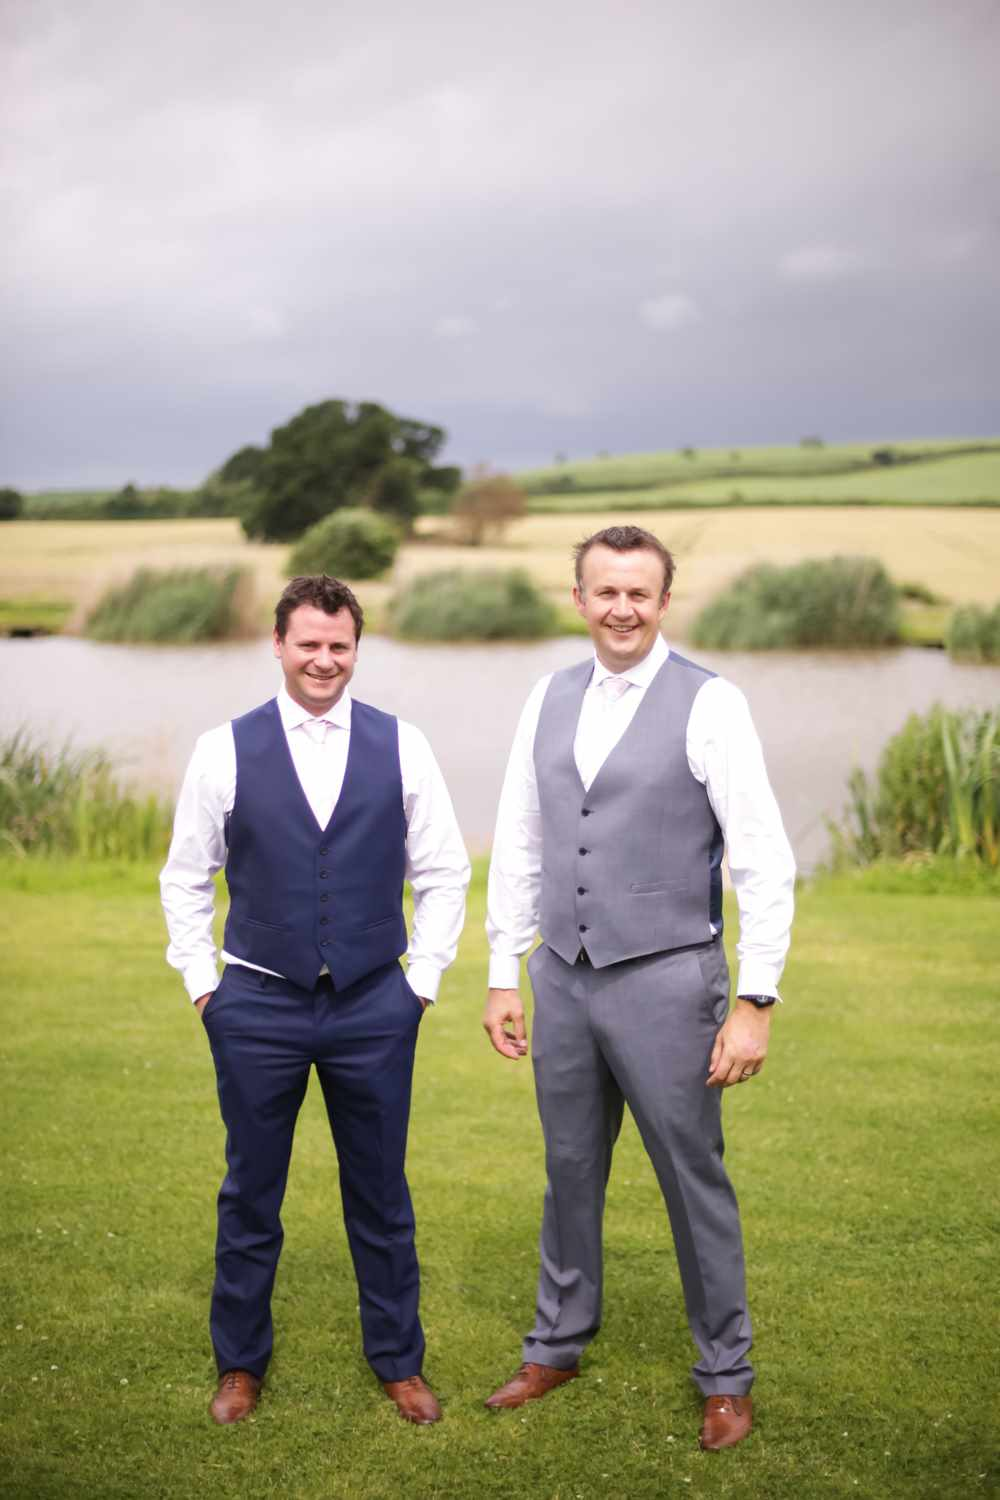 Somesret-wedding-photography-Quantock-lakes-thomas-frost-photography--17